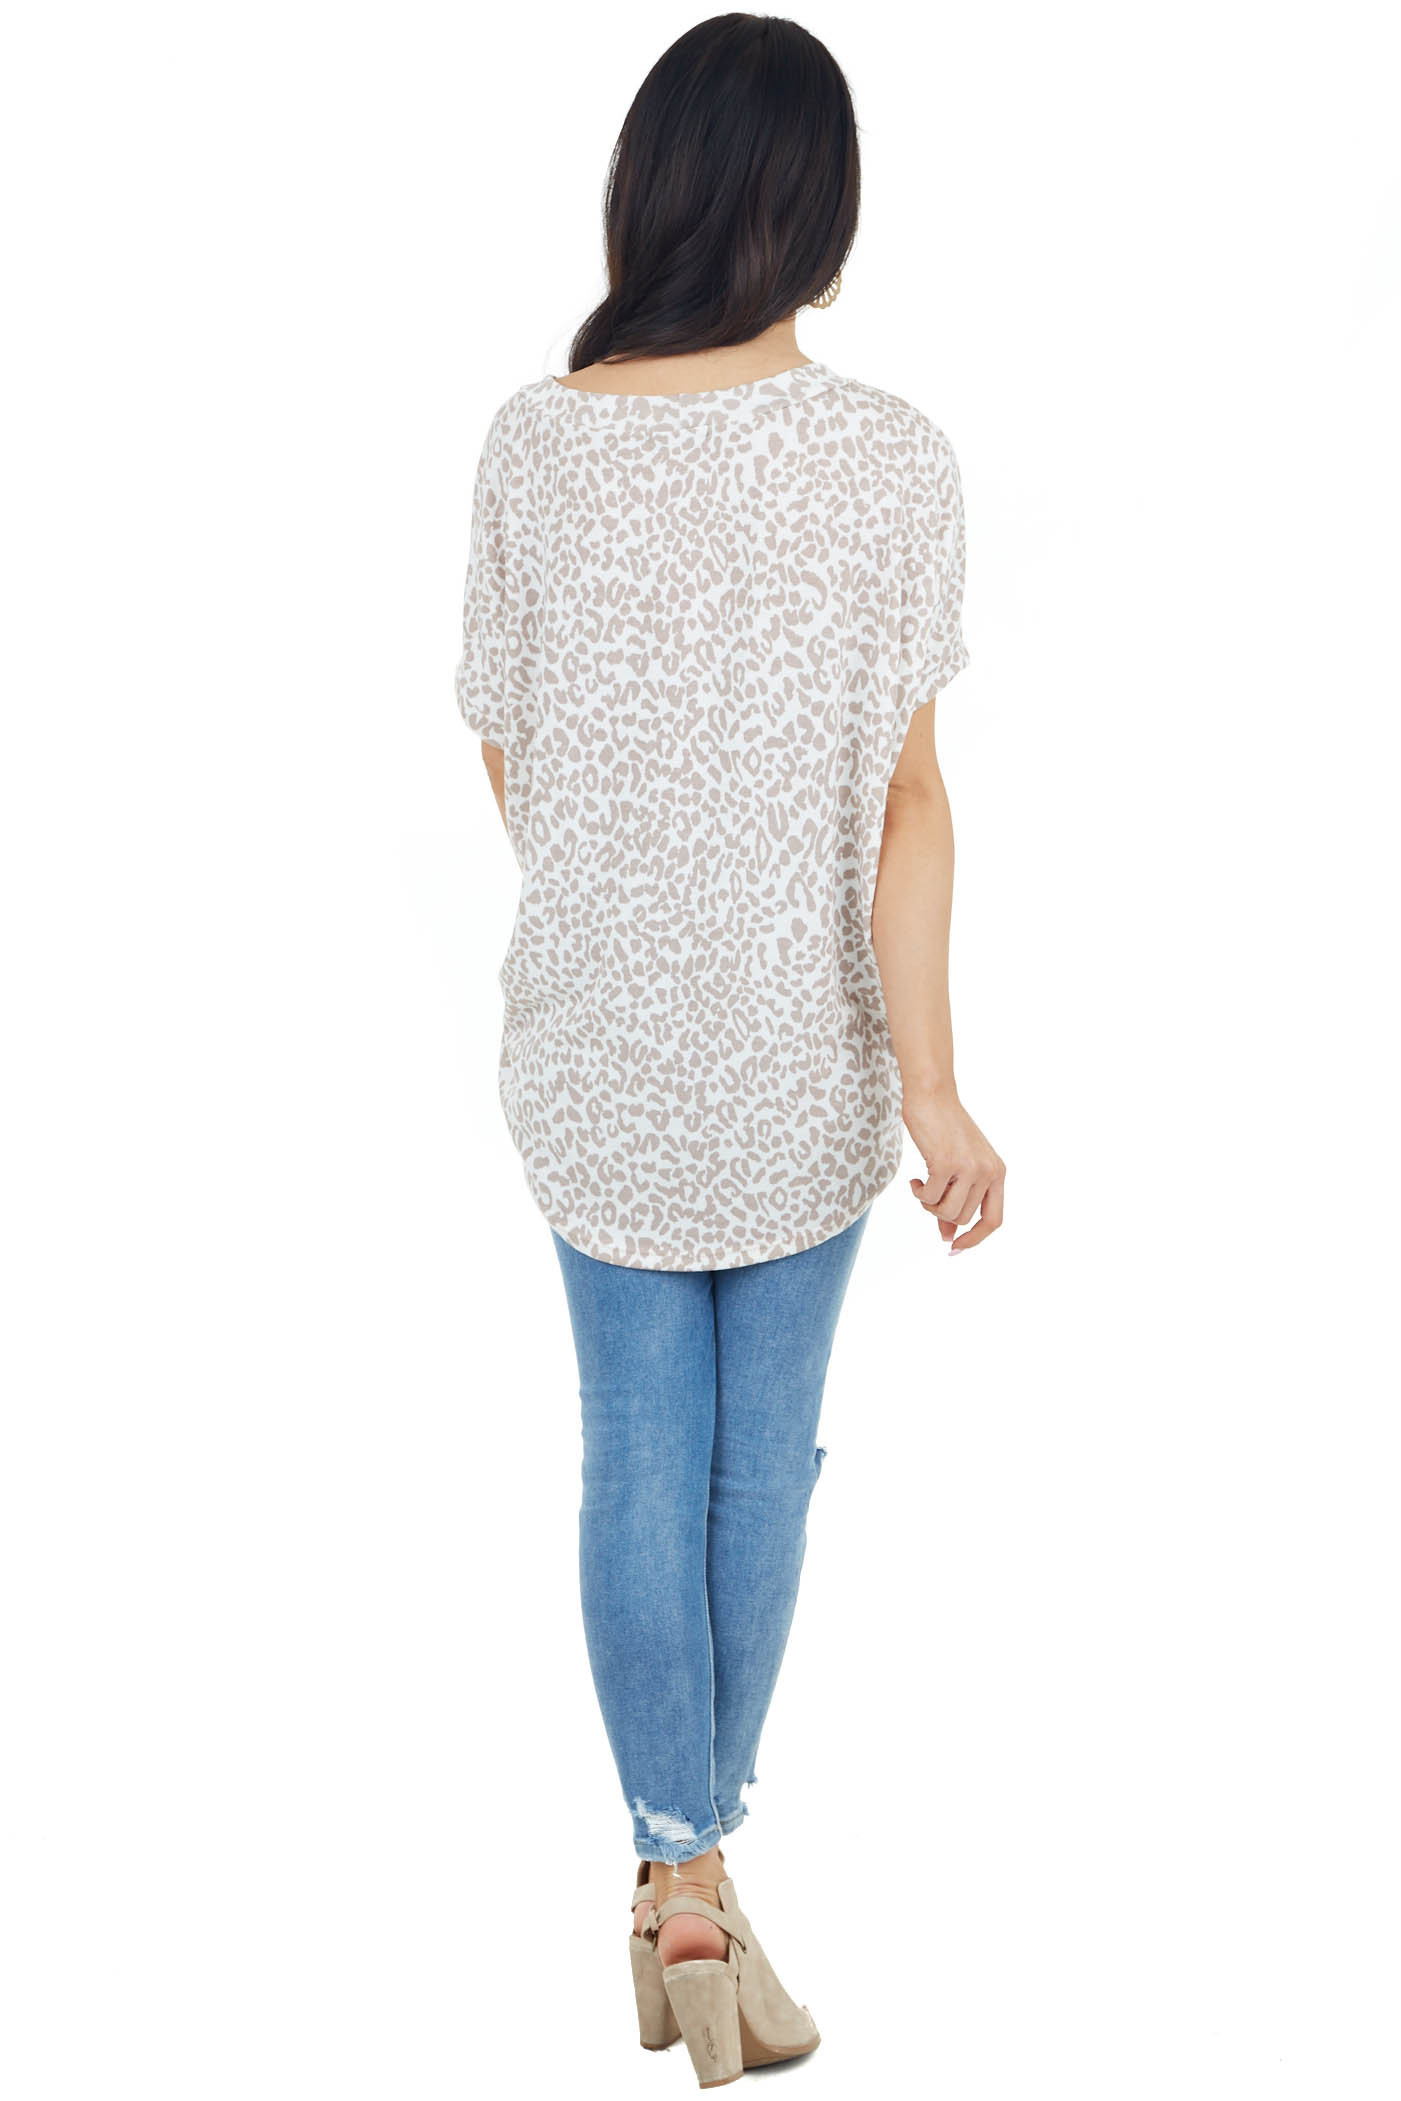 Ivory and Taupe Leopard Print Short Sleeve Knit Top